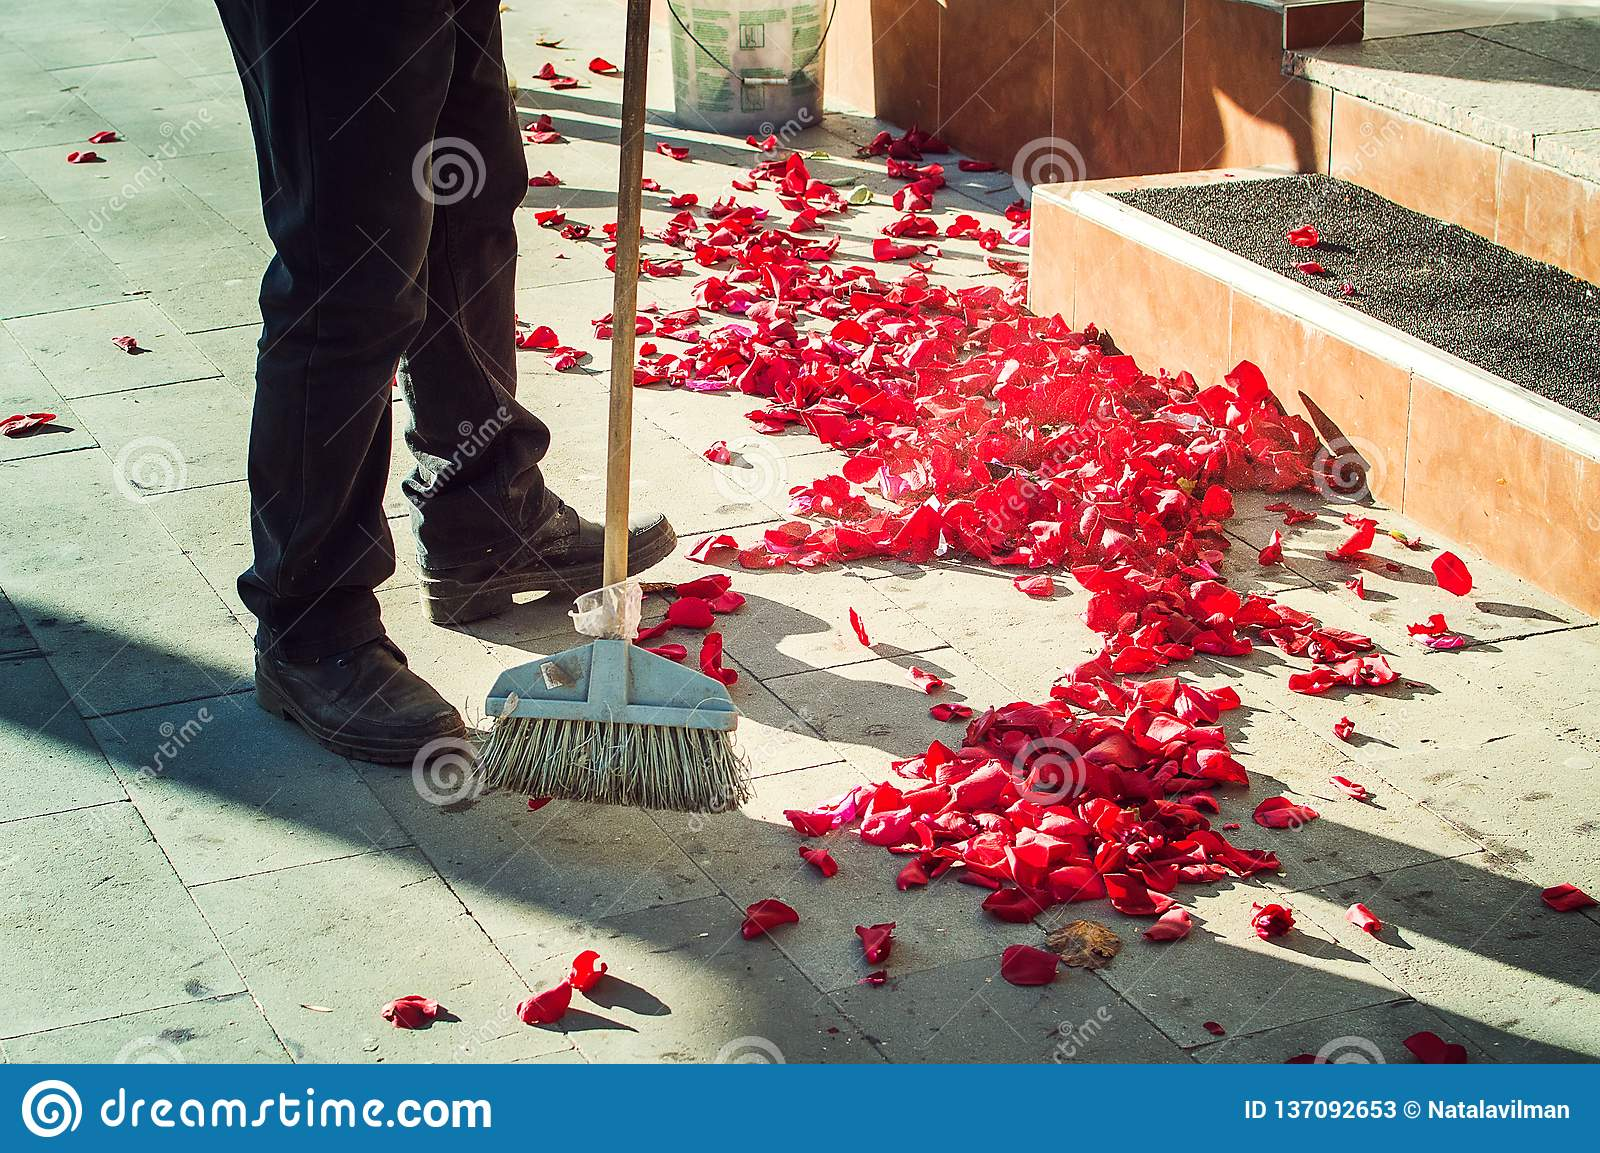 A man sweeps rose petals on the street after the wedding ceremony